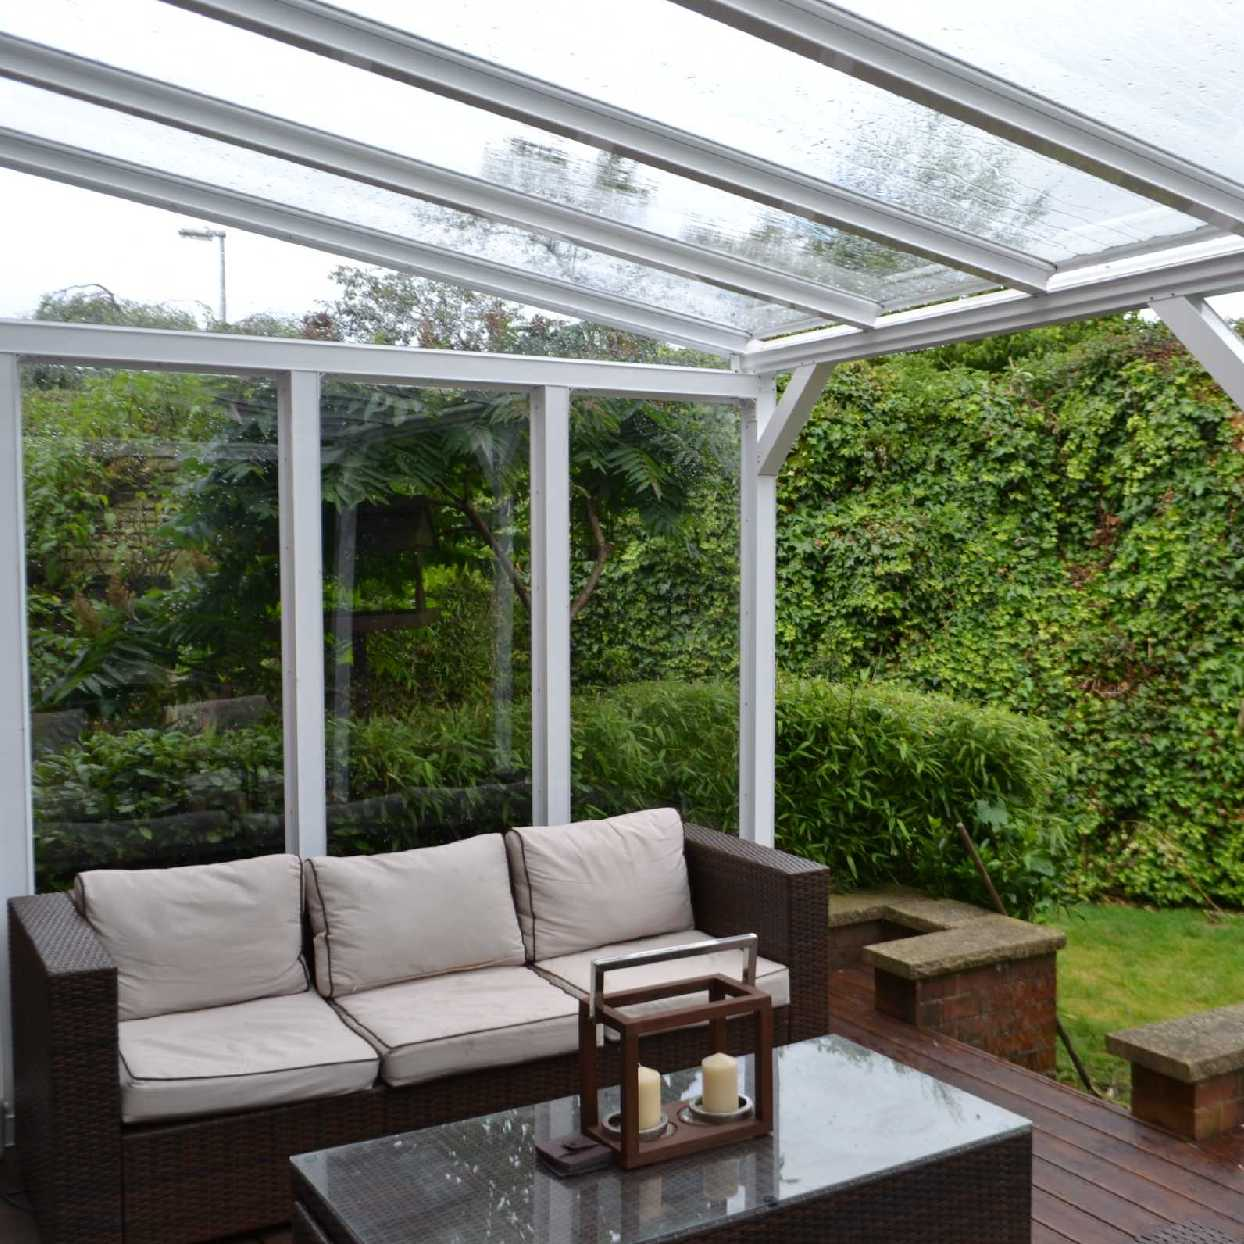 Great selection of Omega Smart Lean-To Canopy with 16mm Polycarbonate Glazing - 11.2m (W) x 4.5m (P), (5) Supporting Posts